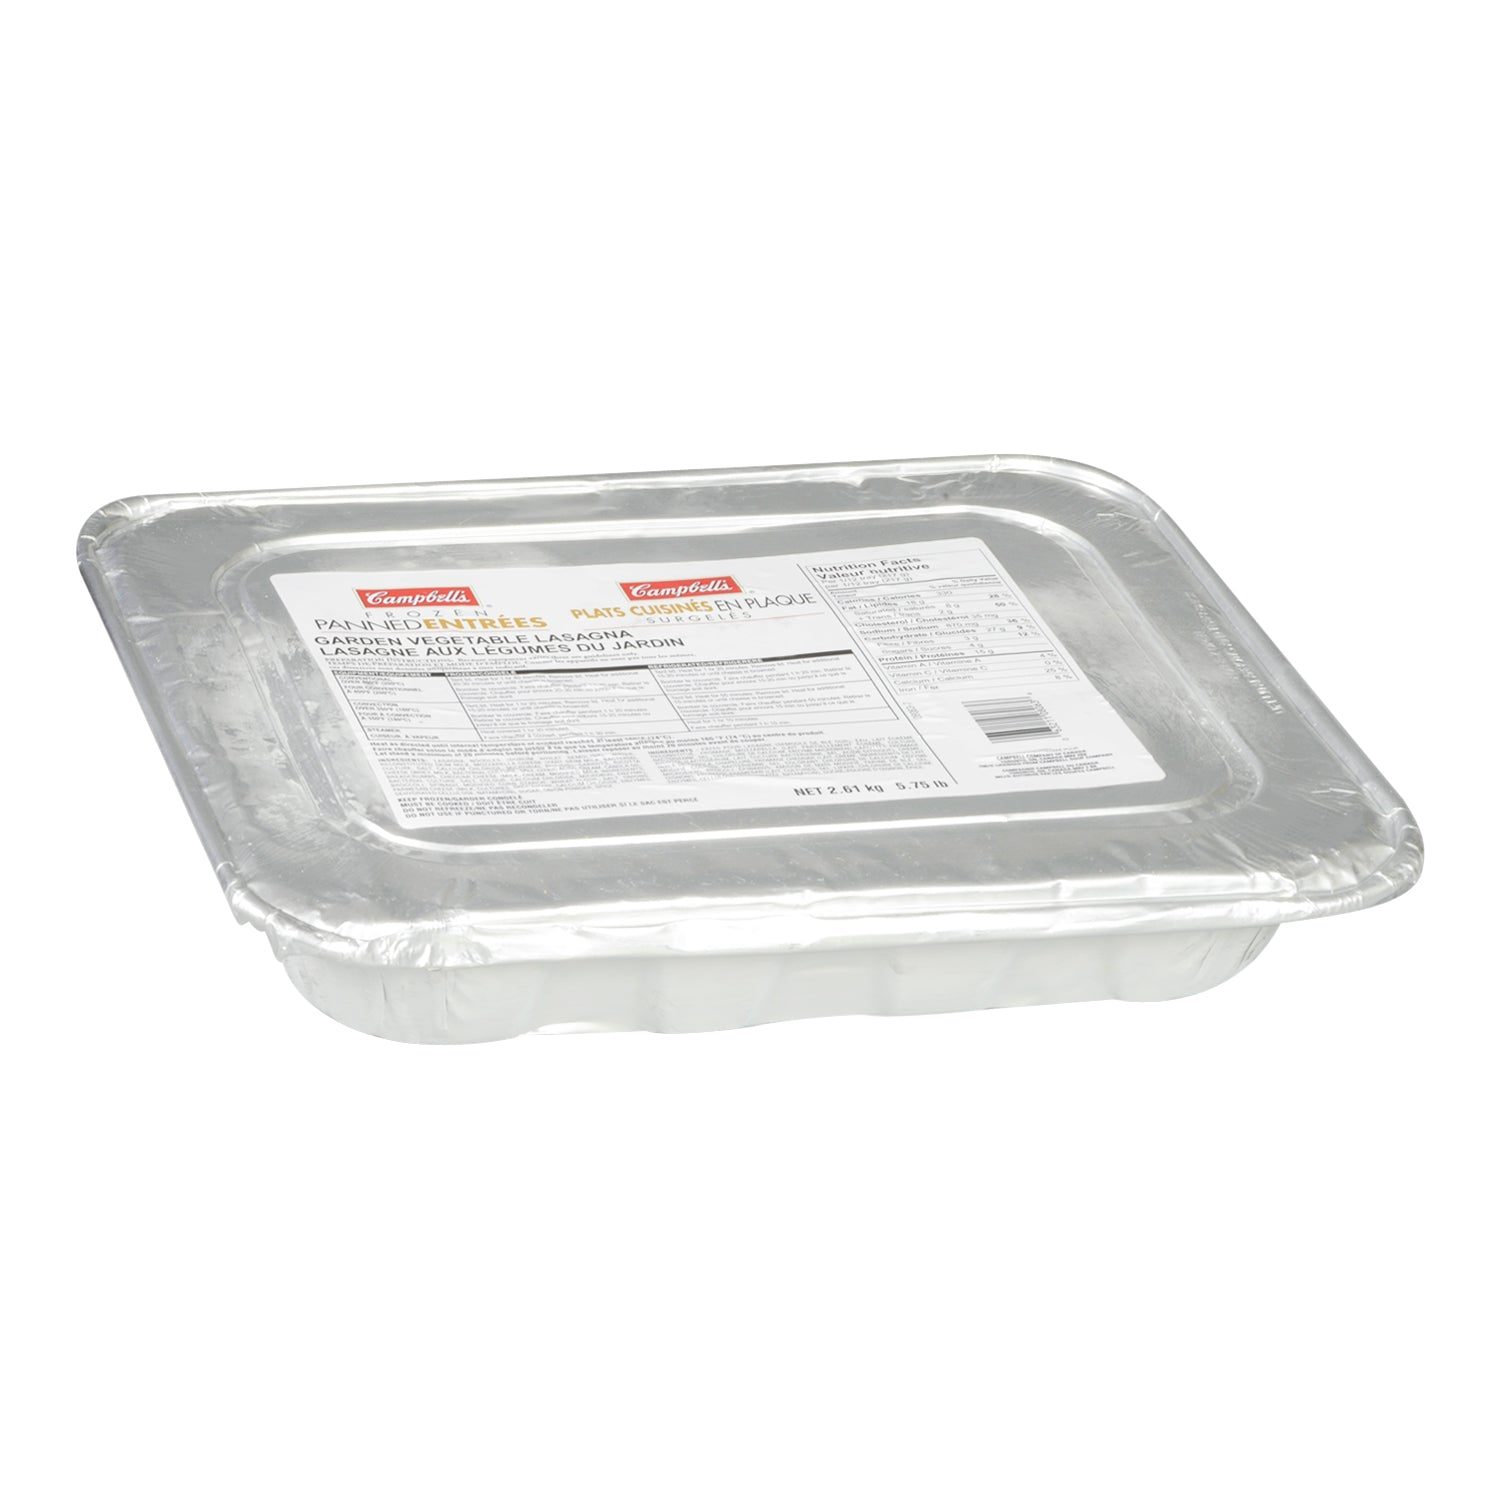 Campbell's Frozen Vegetable Lasagna 5.7 lb - 4 Pack [$4.39/lb]